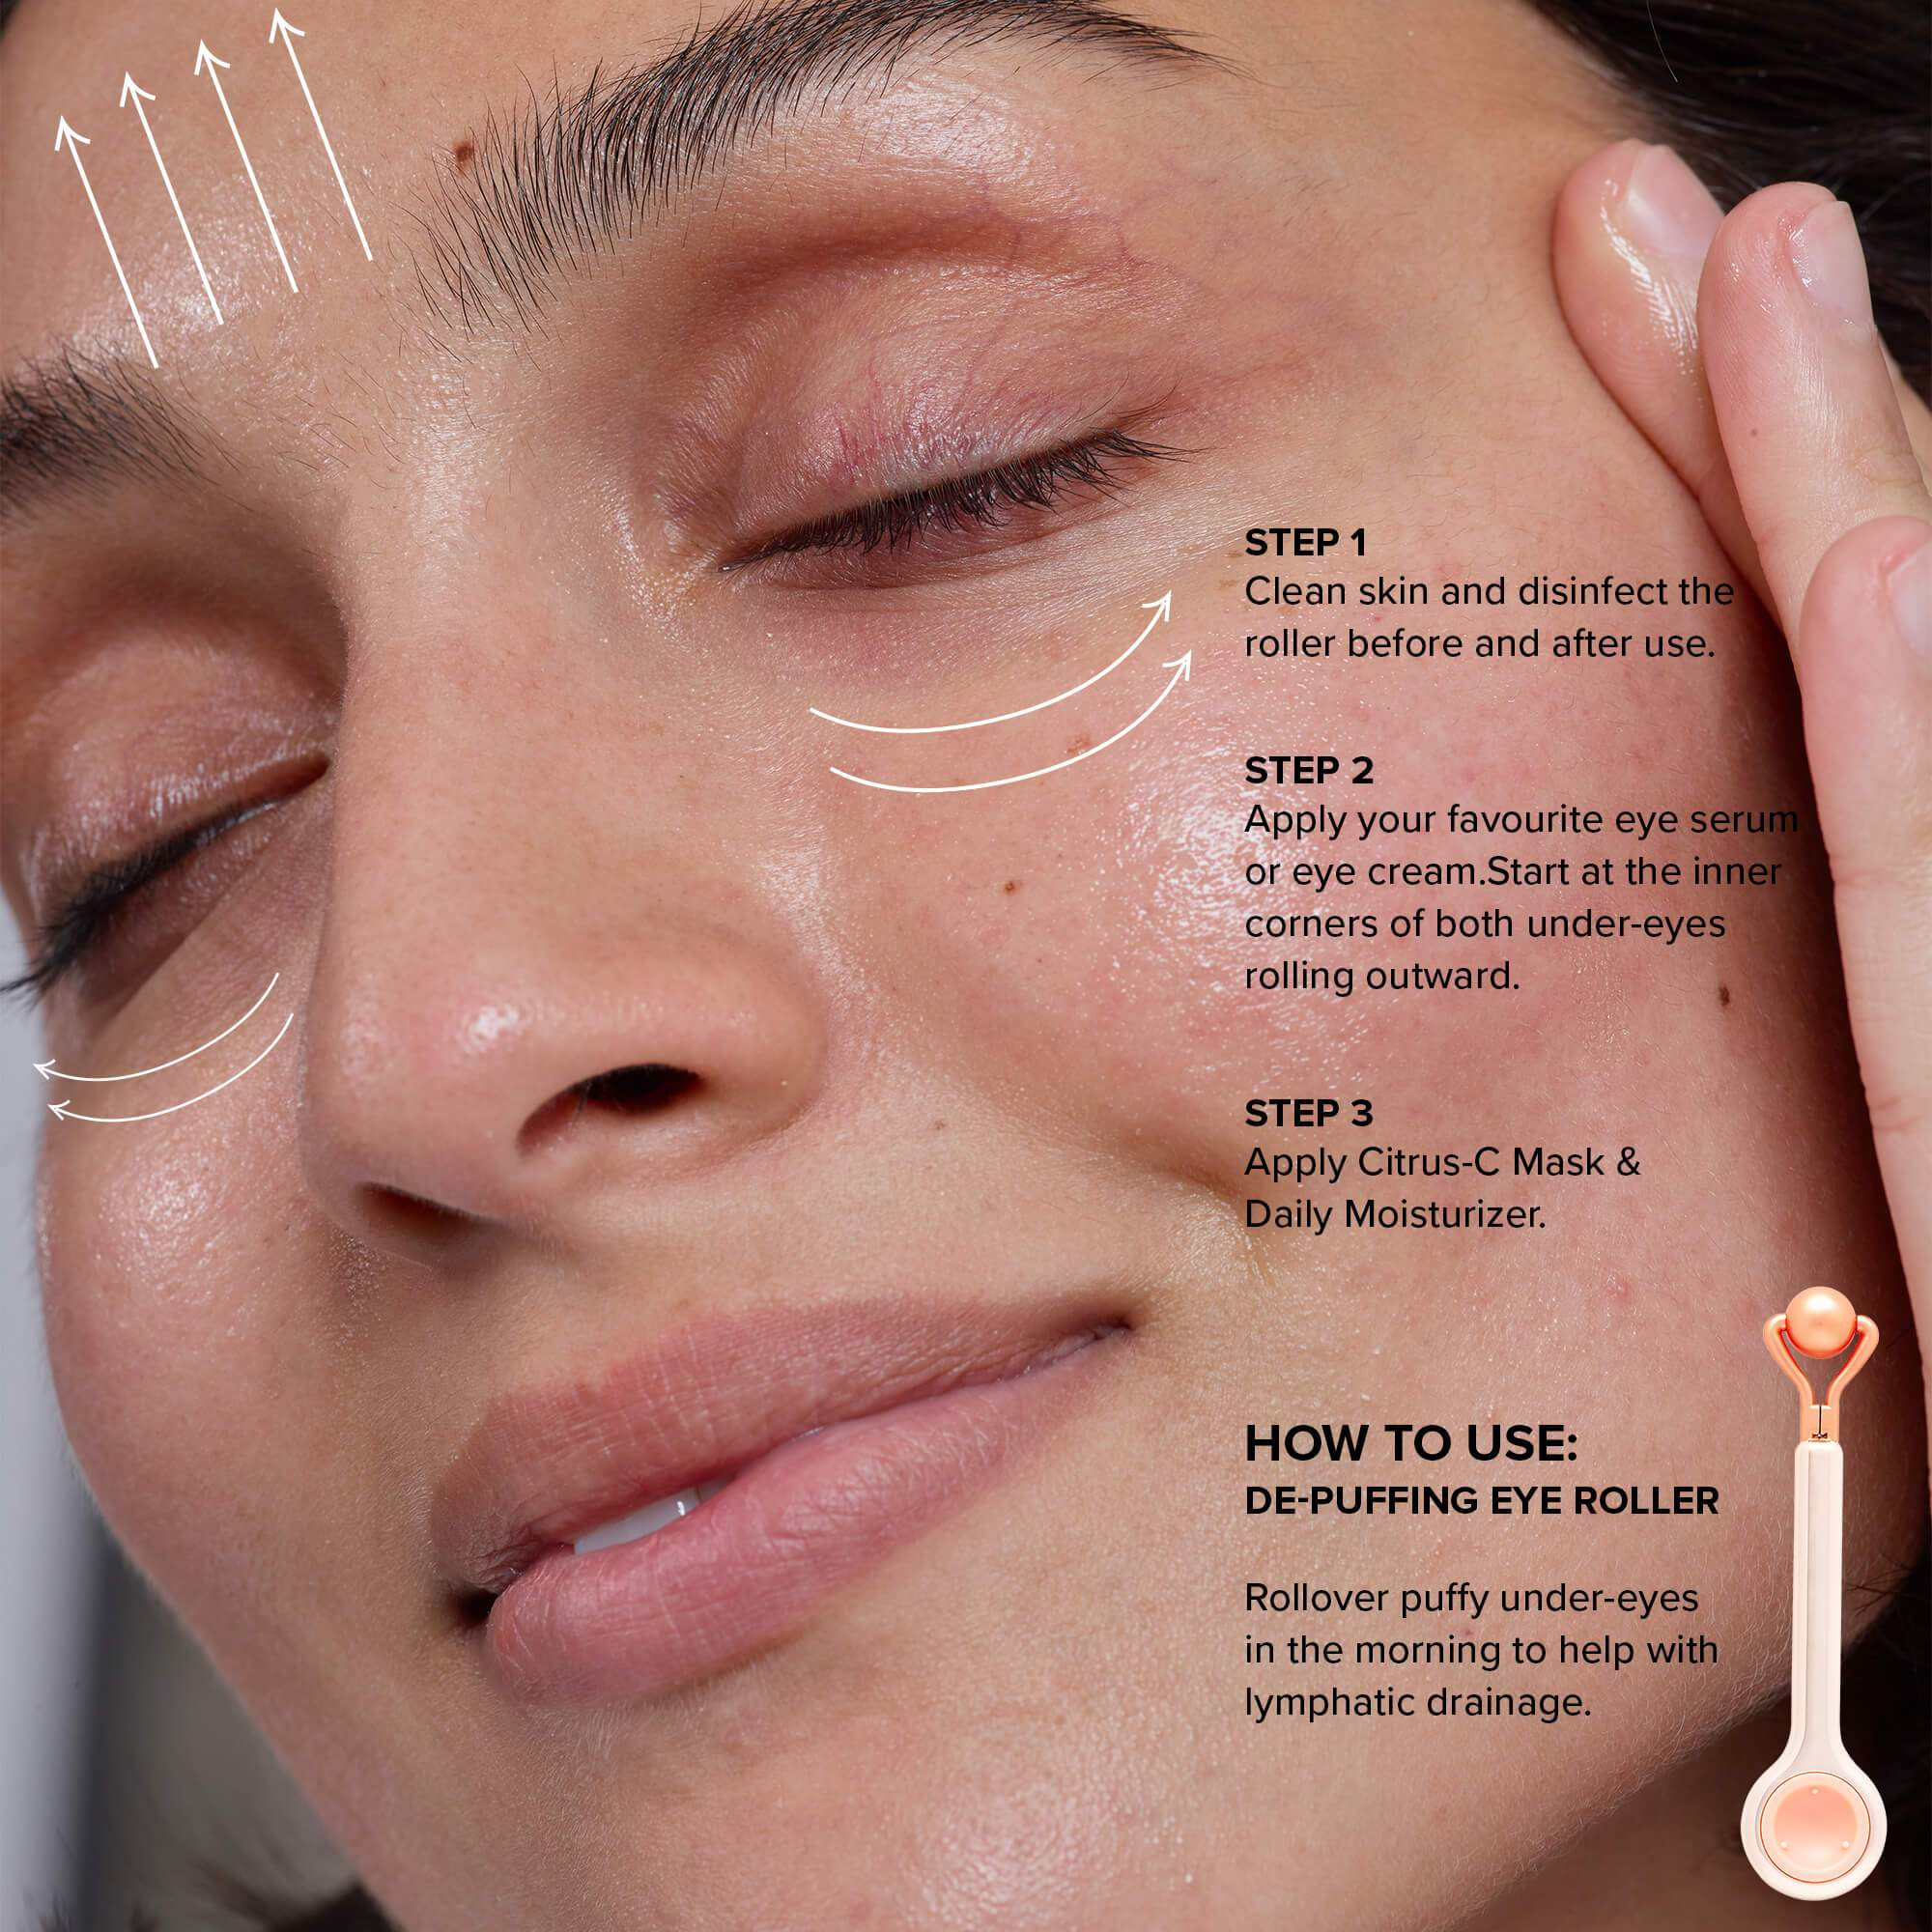 How To Use Eye Roller